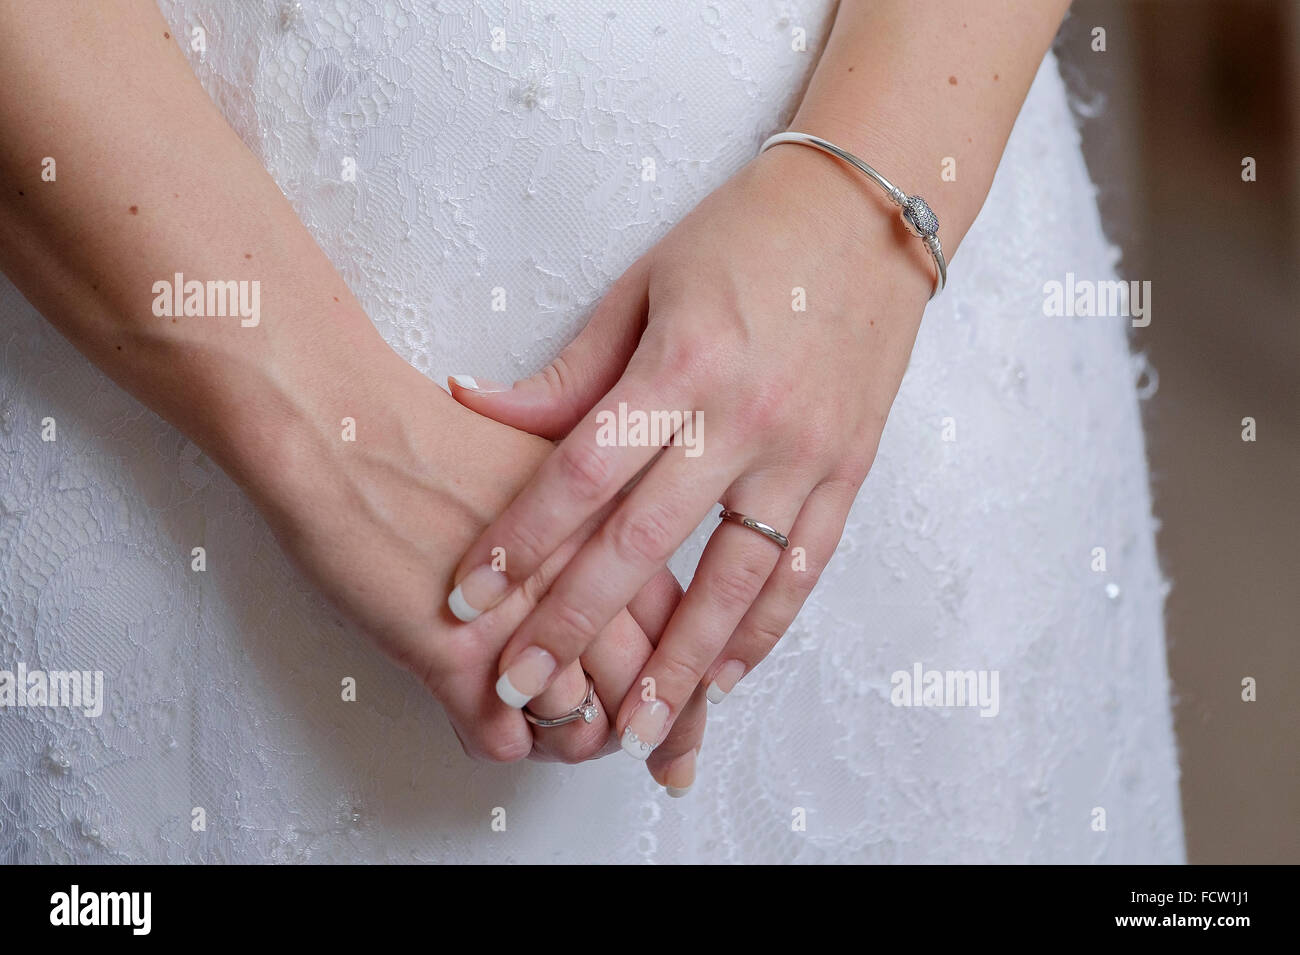 Hands Clasps Stock Photos & Hands Clasps Stock Images - Alamy